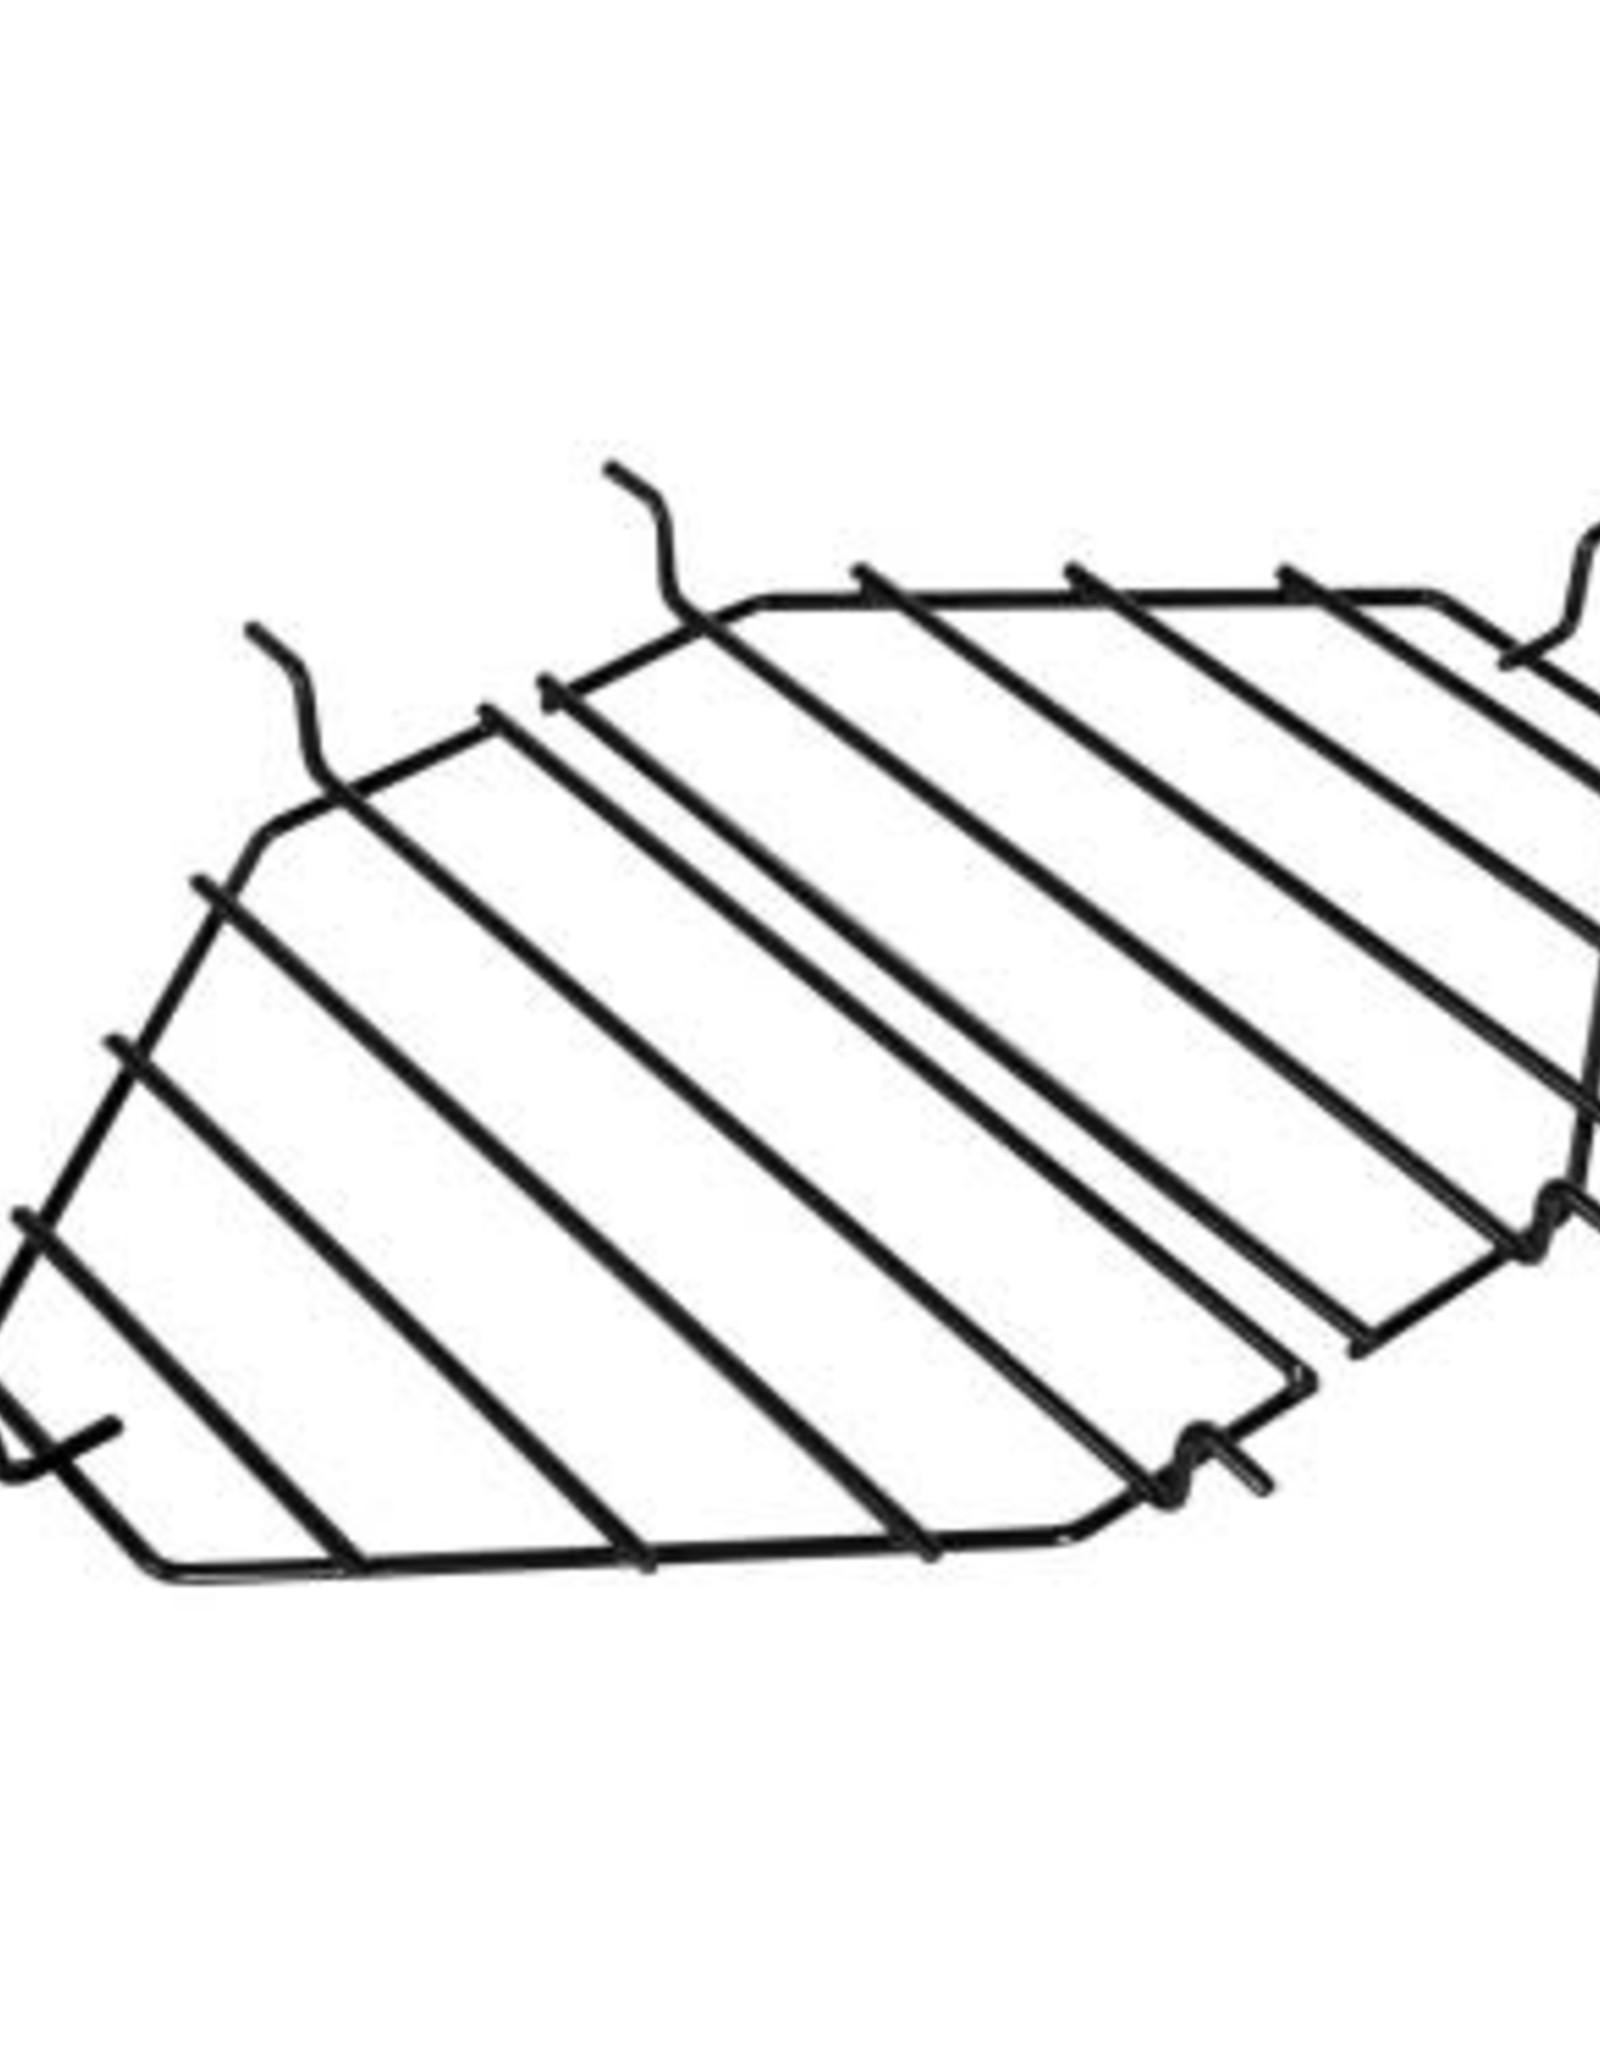 Primo Ceramic Grills Primo Heat Deflector Rack and Roaster Drip Pan Rack for Oval XL 400 #333